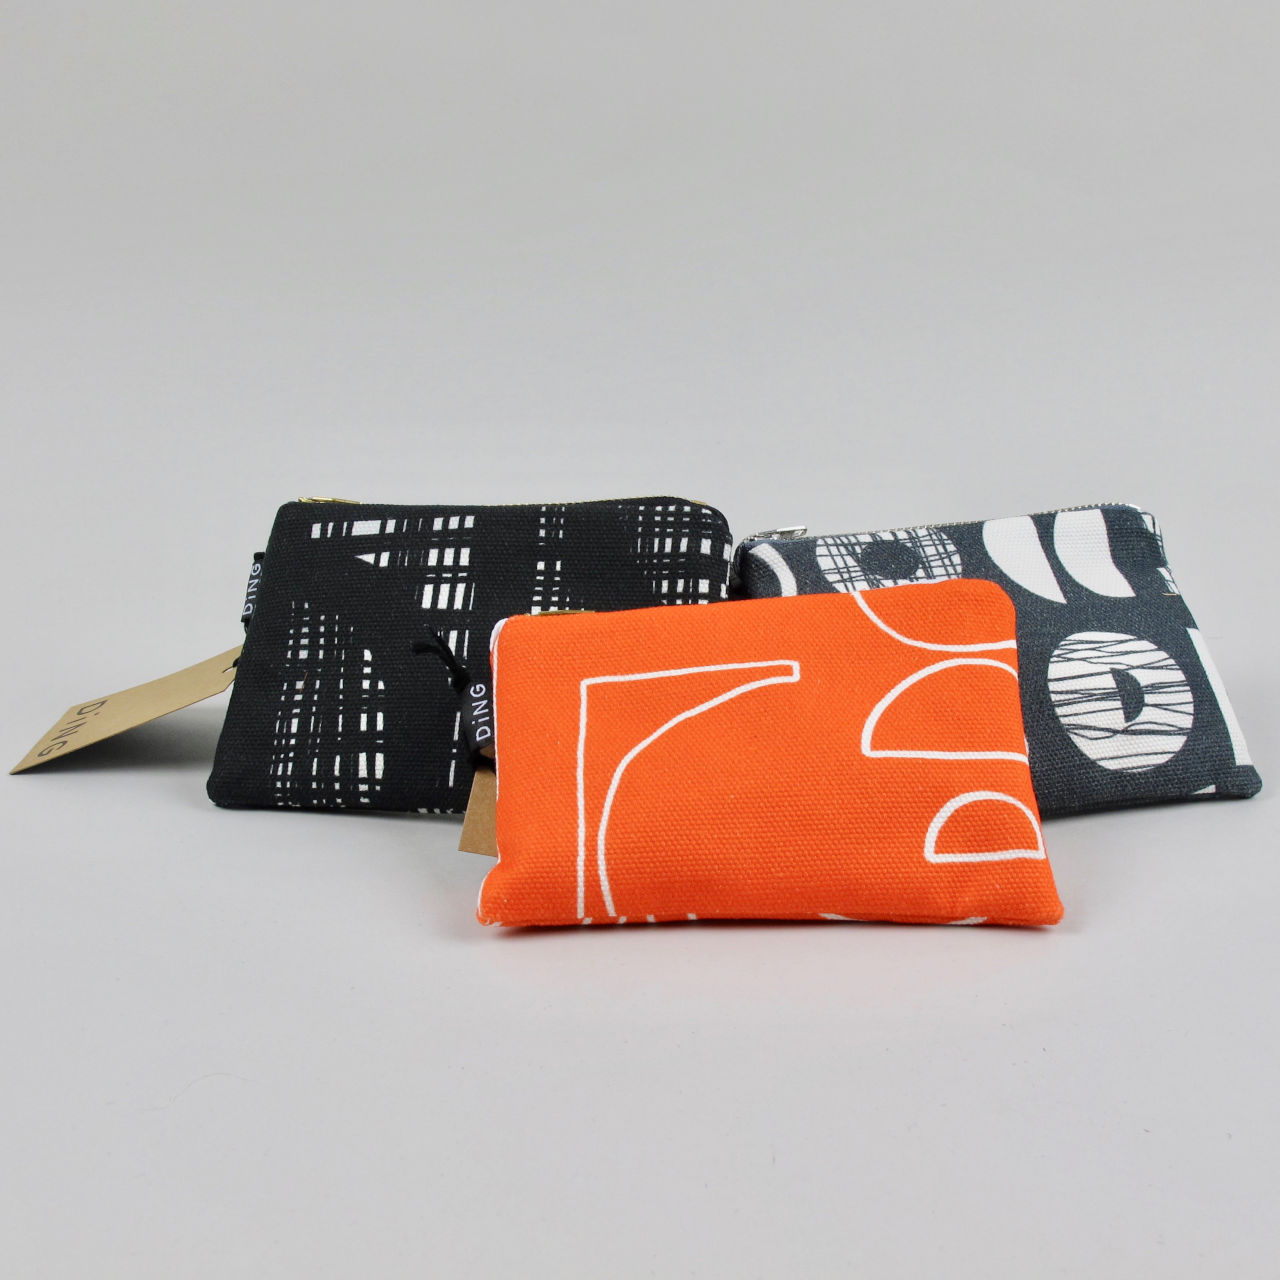 Printed Purse by Ding